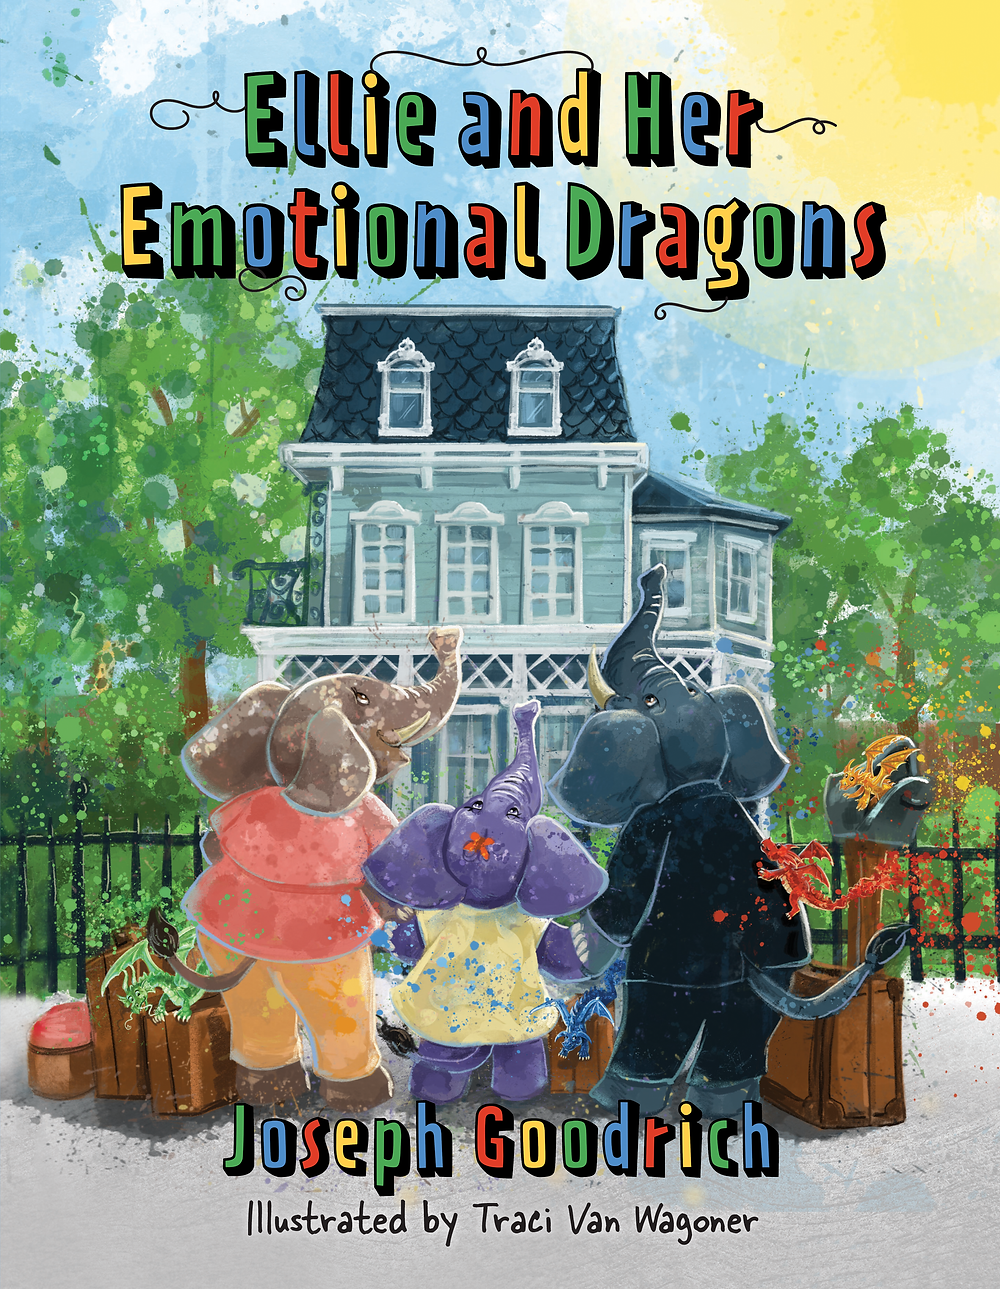 Ellie and Her Emotional Dragons by Joseph Goodrich, illustrated by Traci Van Wagoner